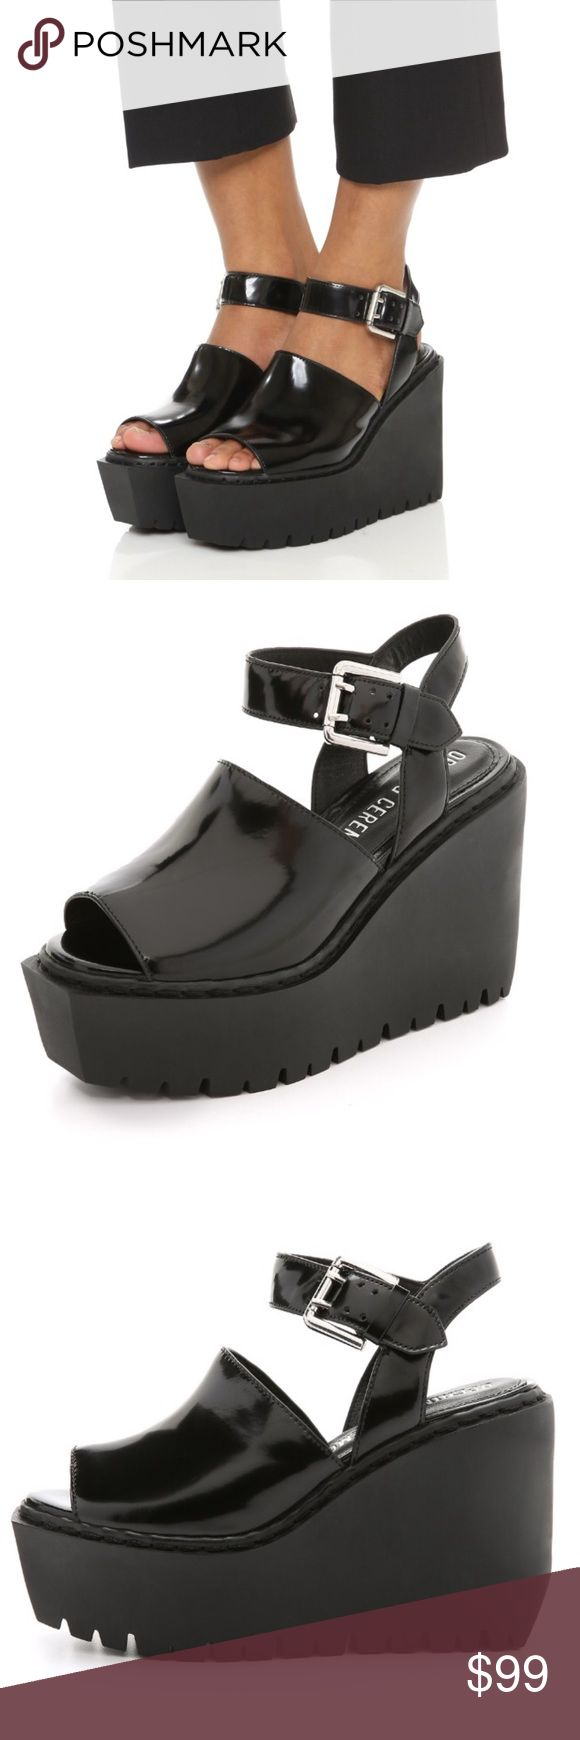 Opening Ceremony Luna Platform Sandal Opening Ceremony's black spazzolato leather Luna ankle-strap sandals are styled with a rubber platform wedge heel. Size 39, fits true 8.5/9. New in box. Opening Ceremony Shoes Platforms